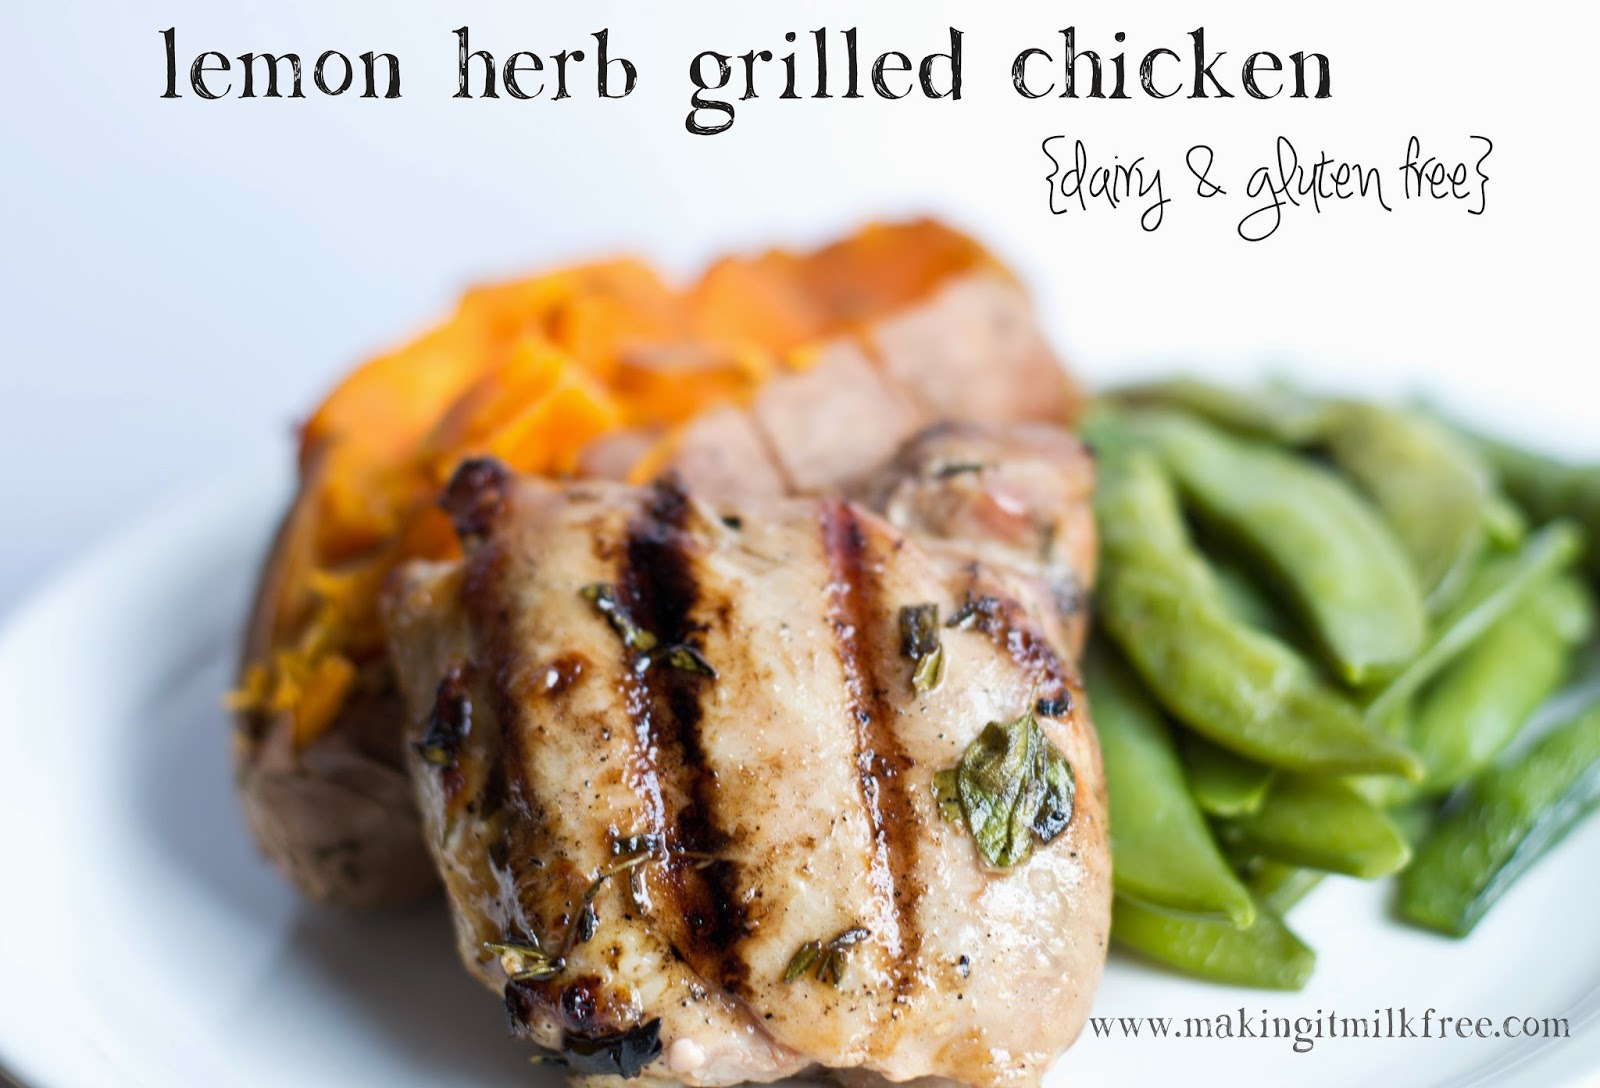 #glutenfree #dairyfree #grilled_chicken